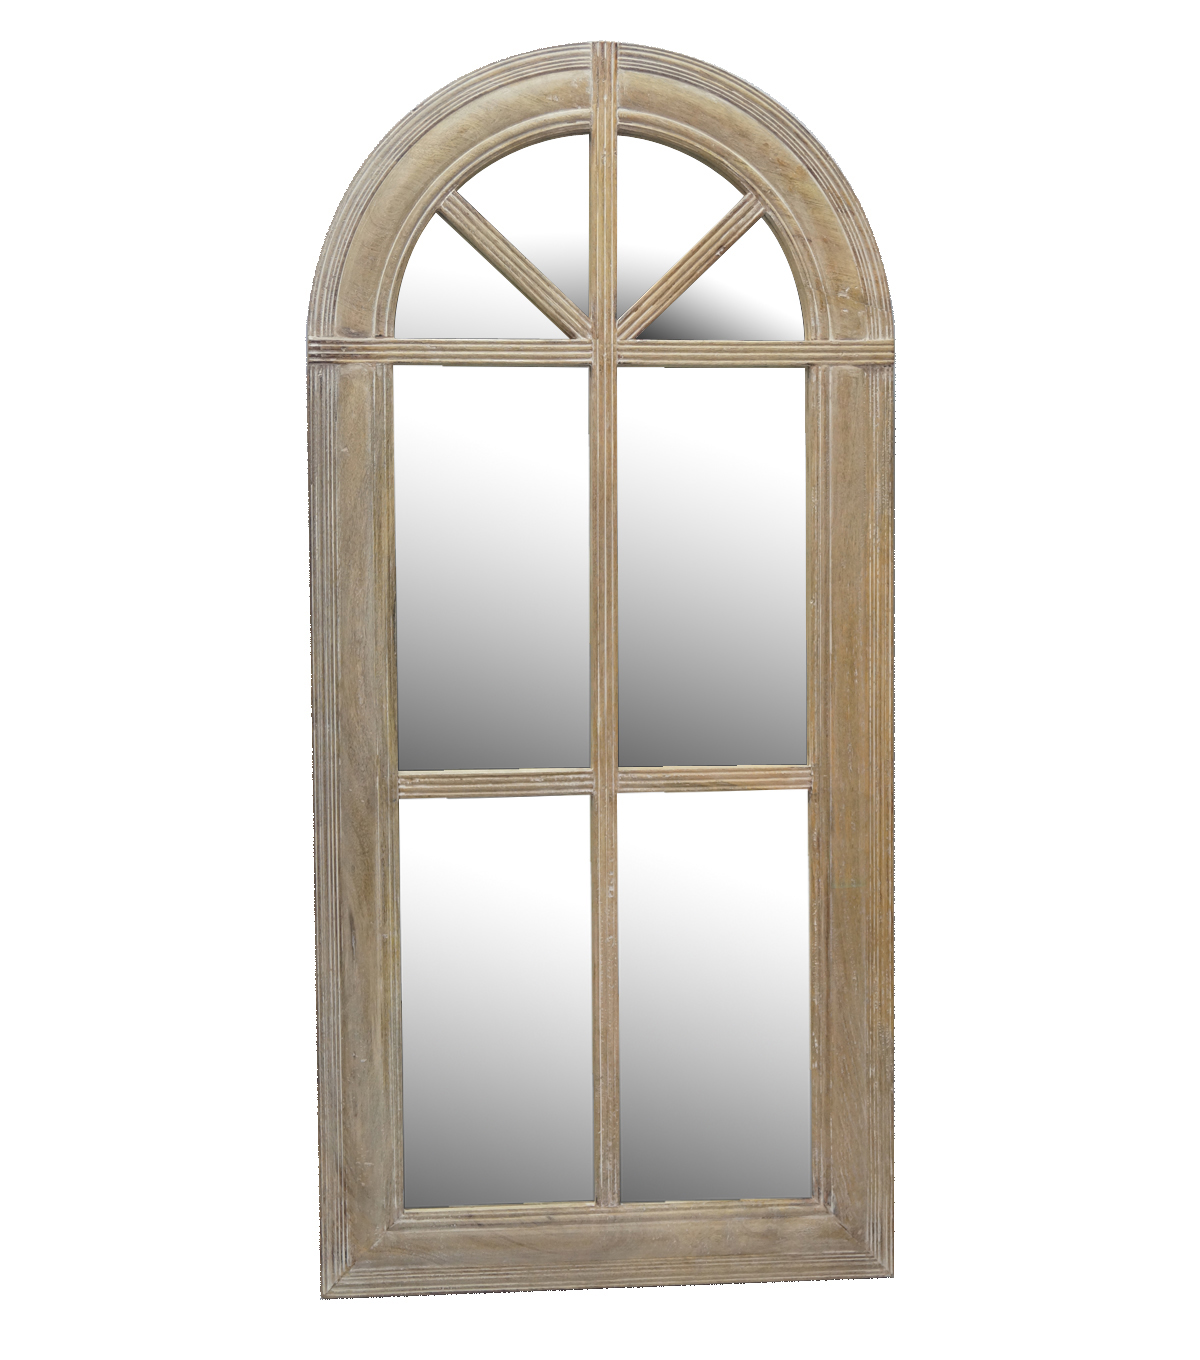 Idea Market Paris Arch Whitewash Wooden Mirror-Natural